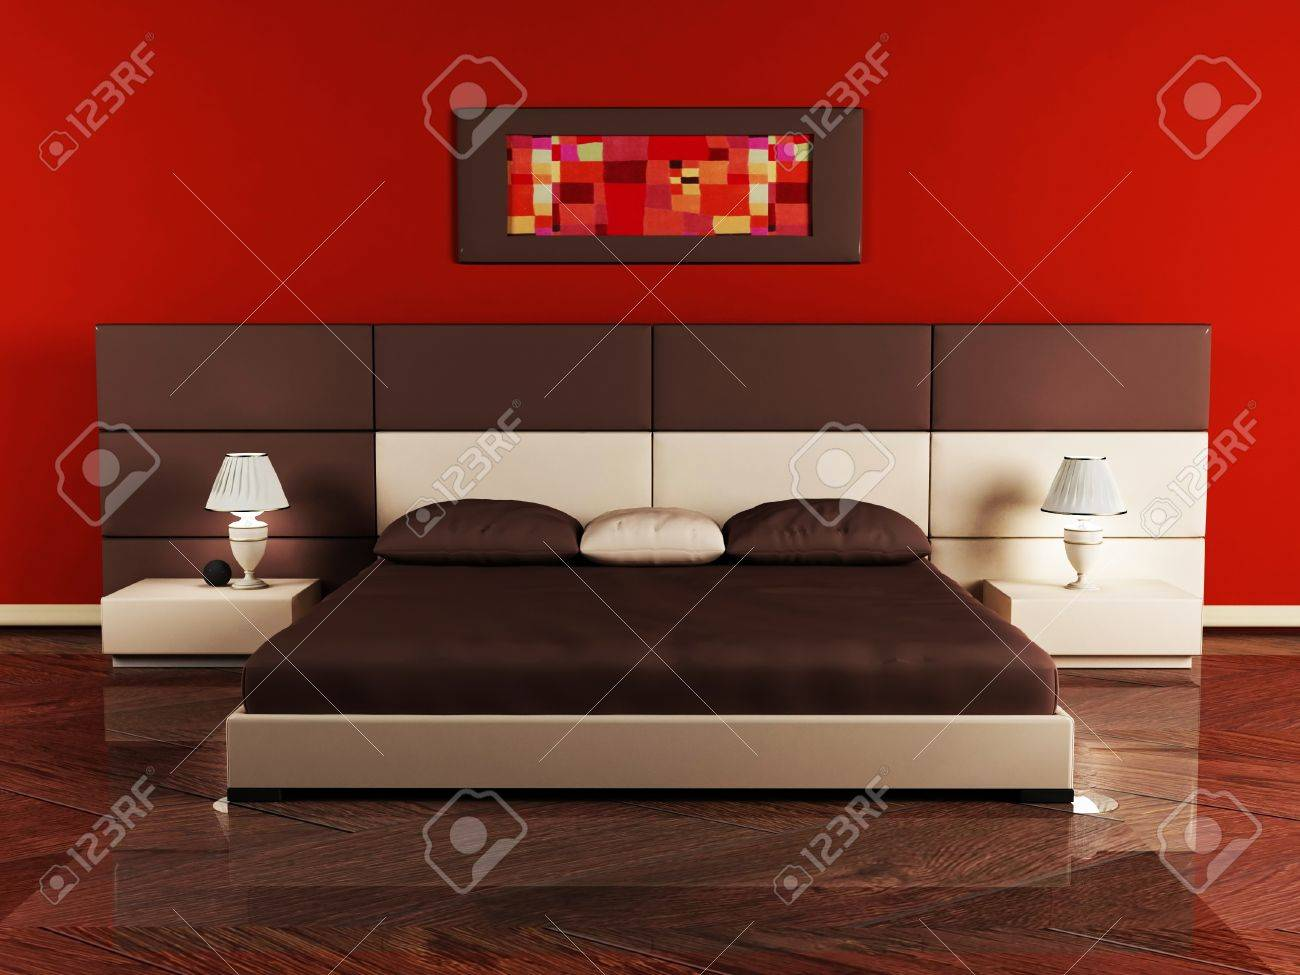 Modern Interior Design Of Bedroom With A Nice Bed And A Table Stock Photo 12975556